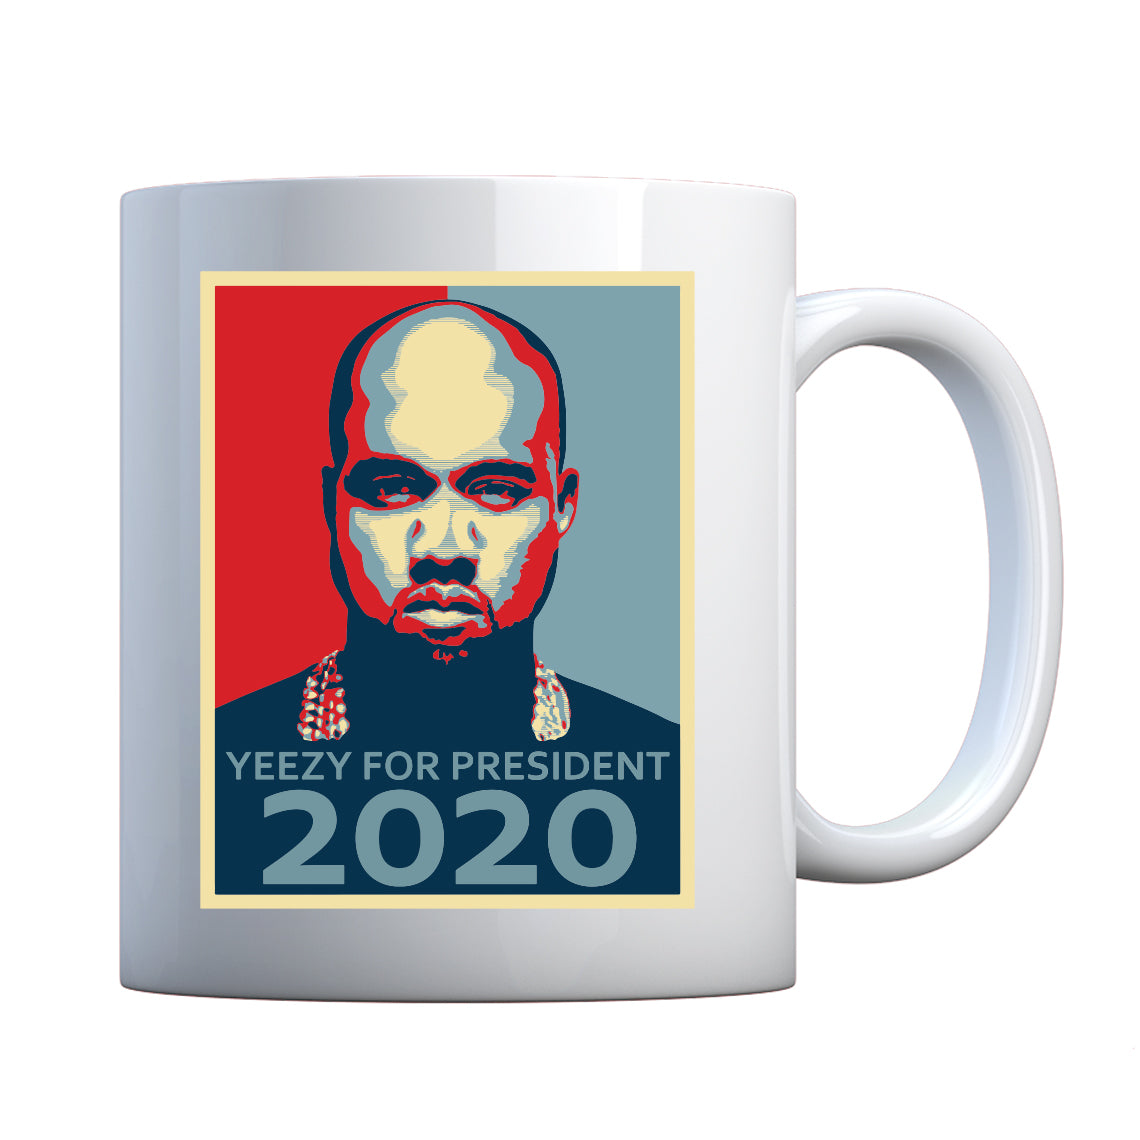 Mug Yeezy for President 2020 Ceramic Gift Mug